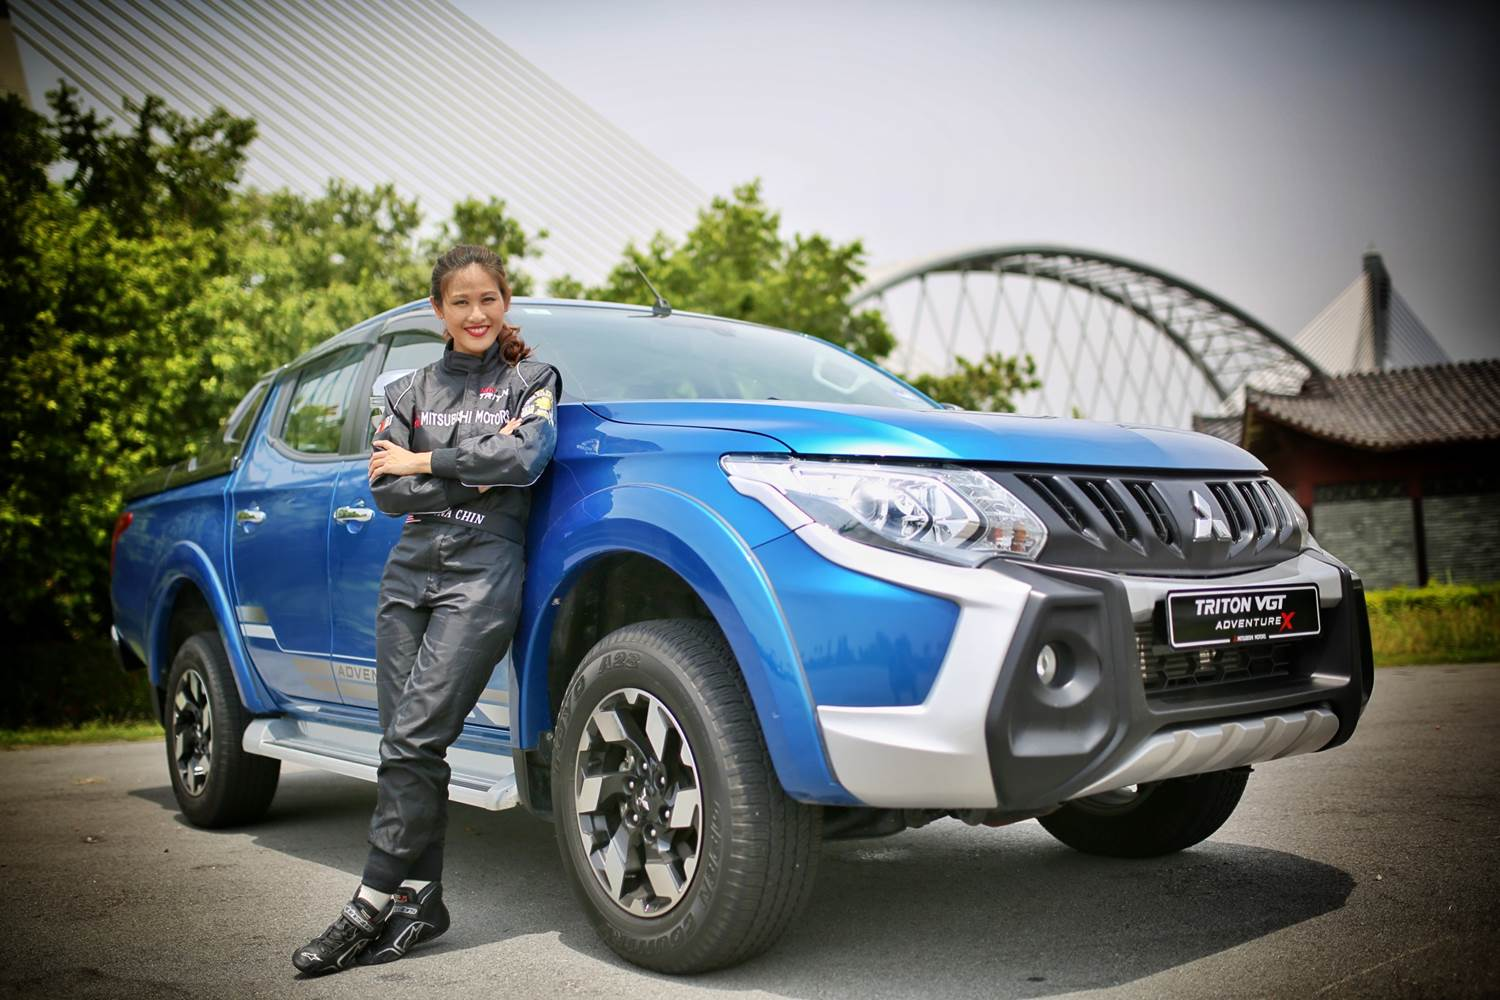 She first became more involved in mitsubishi motors after her famous sales girl drifts customers in pickup truck prank video which has more than 7 3